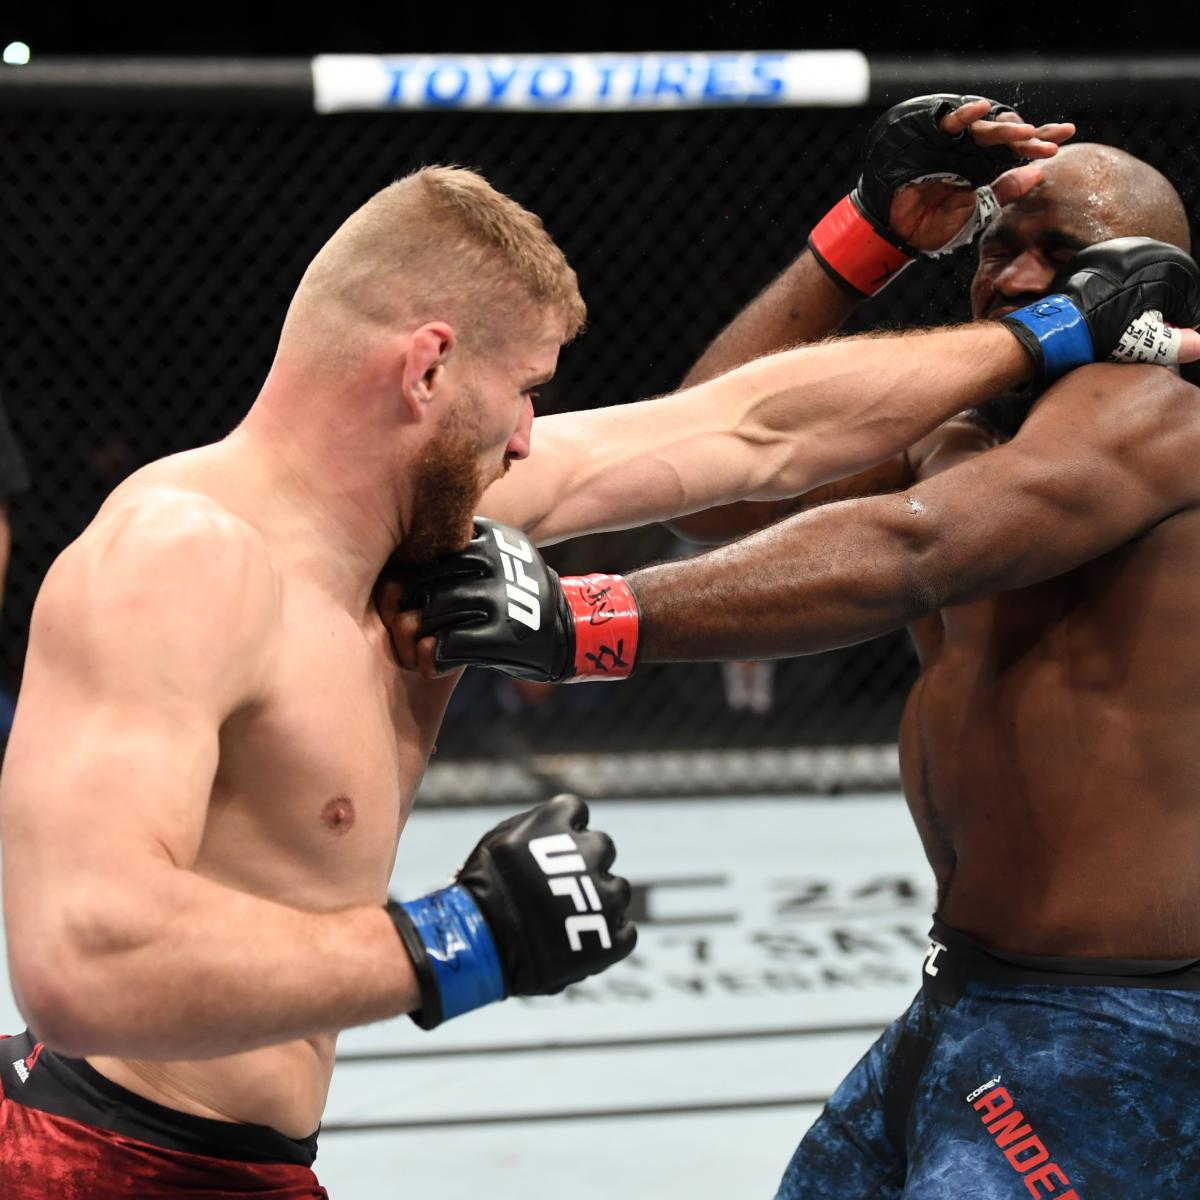 UFC Fight Night 167 Results: Blachowicz Beats Anderson via 1st-Round Knockout